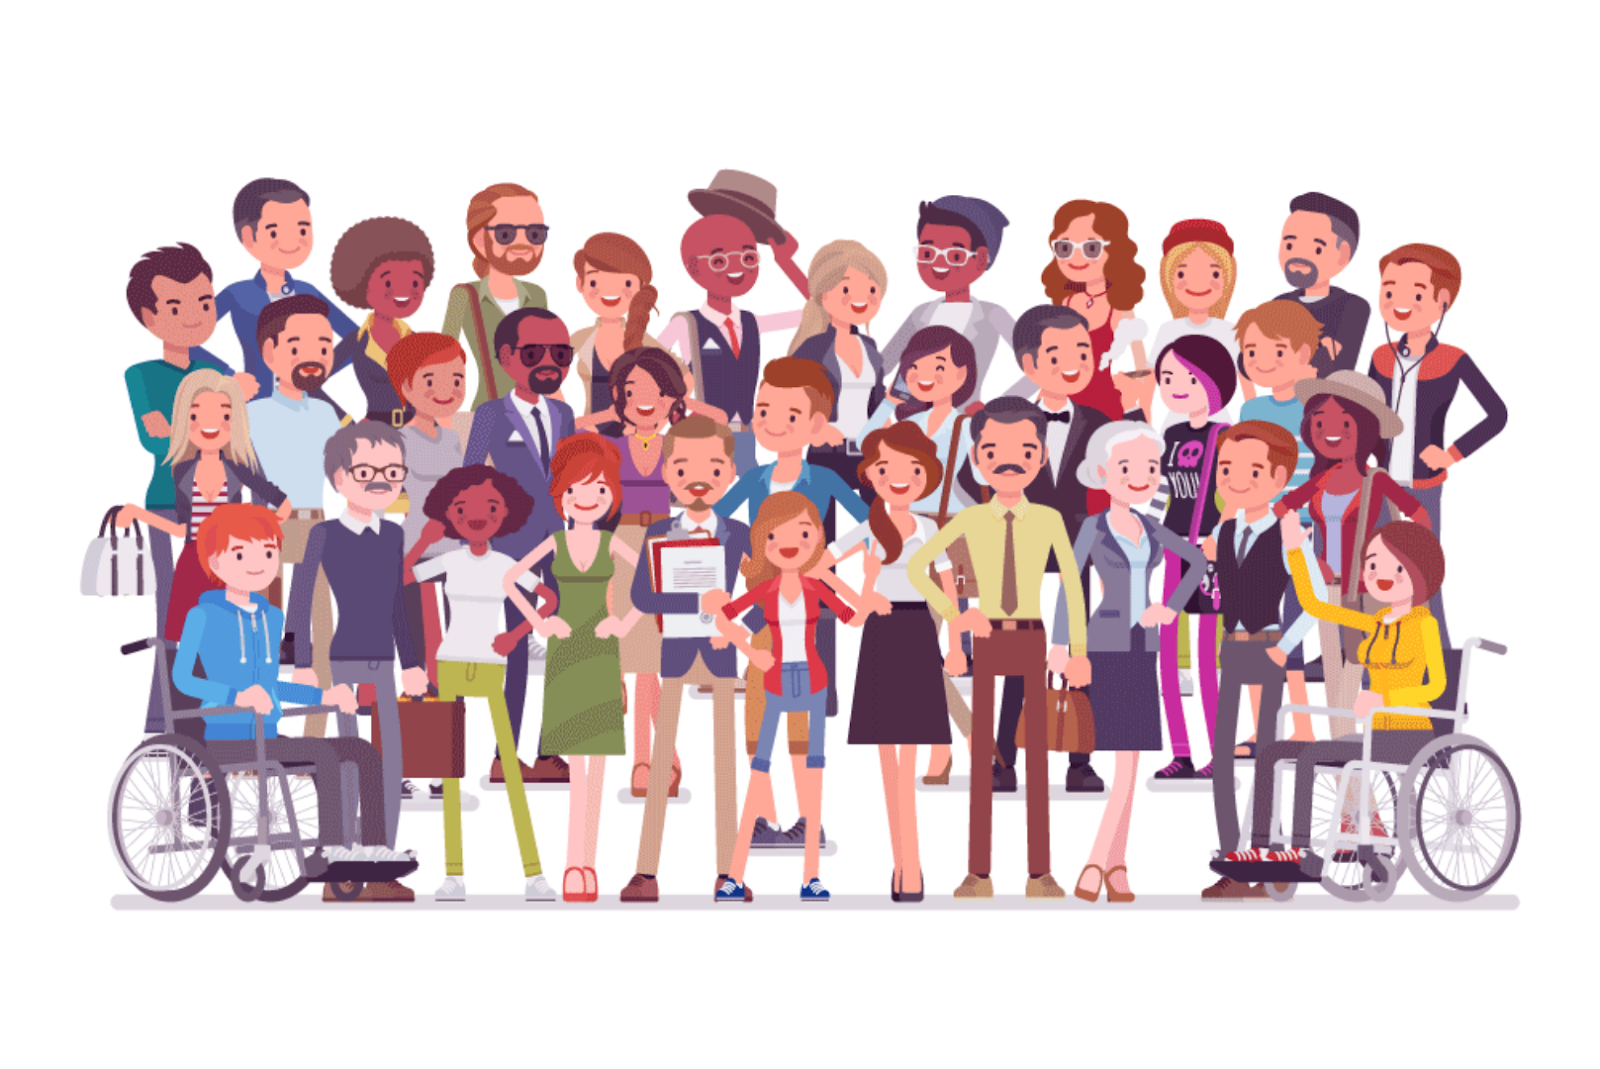 inclusion policies in virtual work spaces